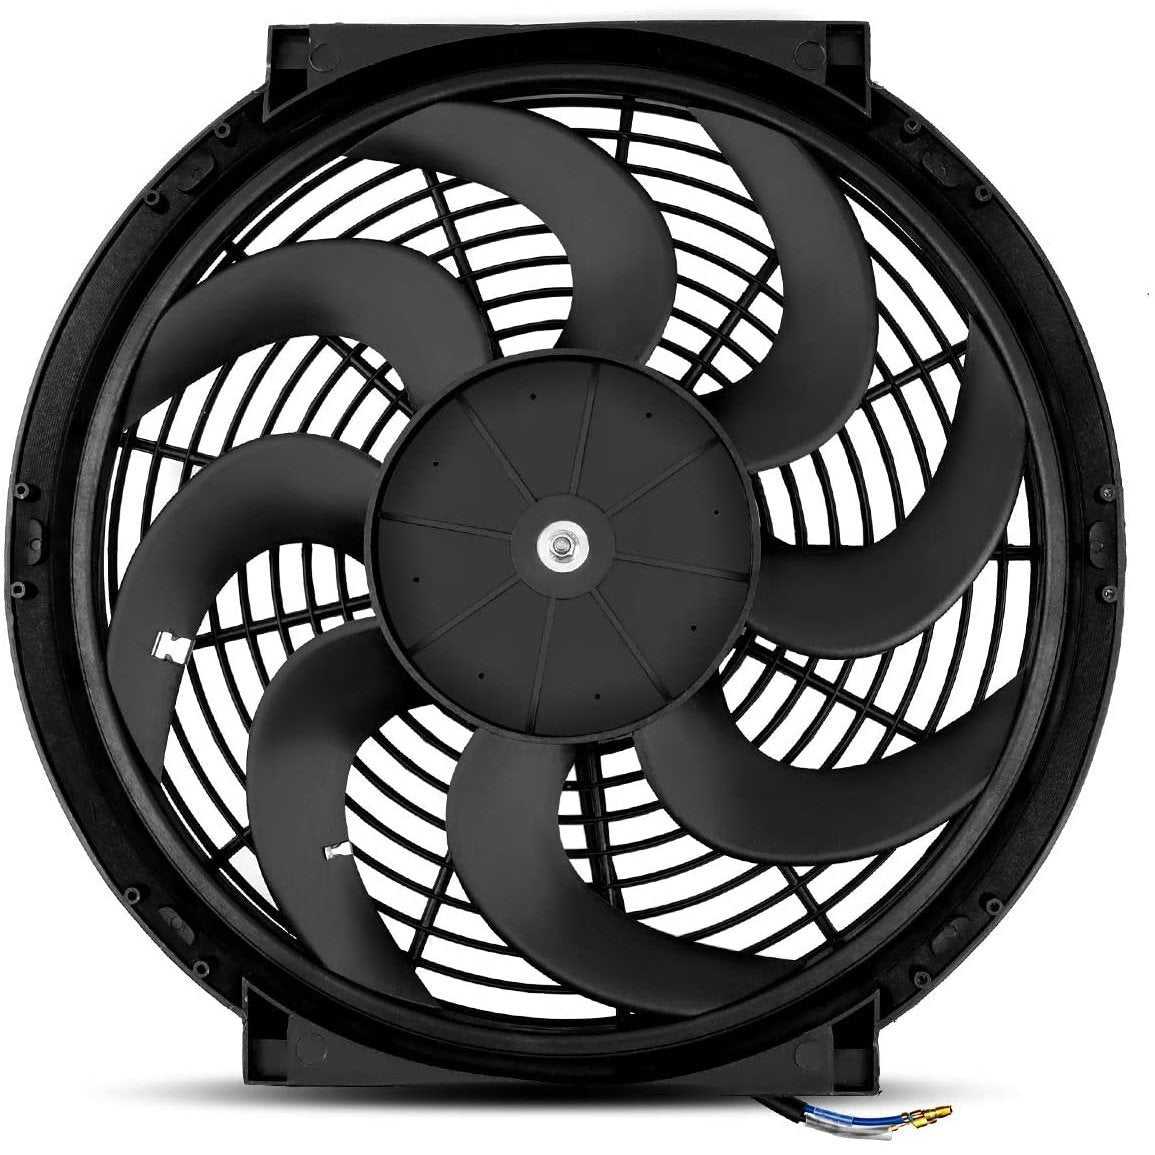 "12"" Inch 12V Electric Fan Upgraded 120w Motor Engine Radiator Cooling High Performance CFM-Single Electric Fans-American Volt-American Volt"